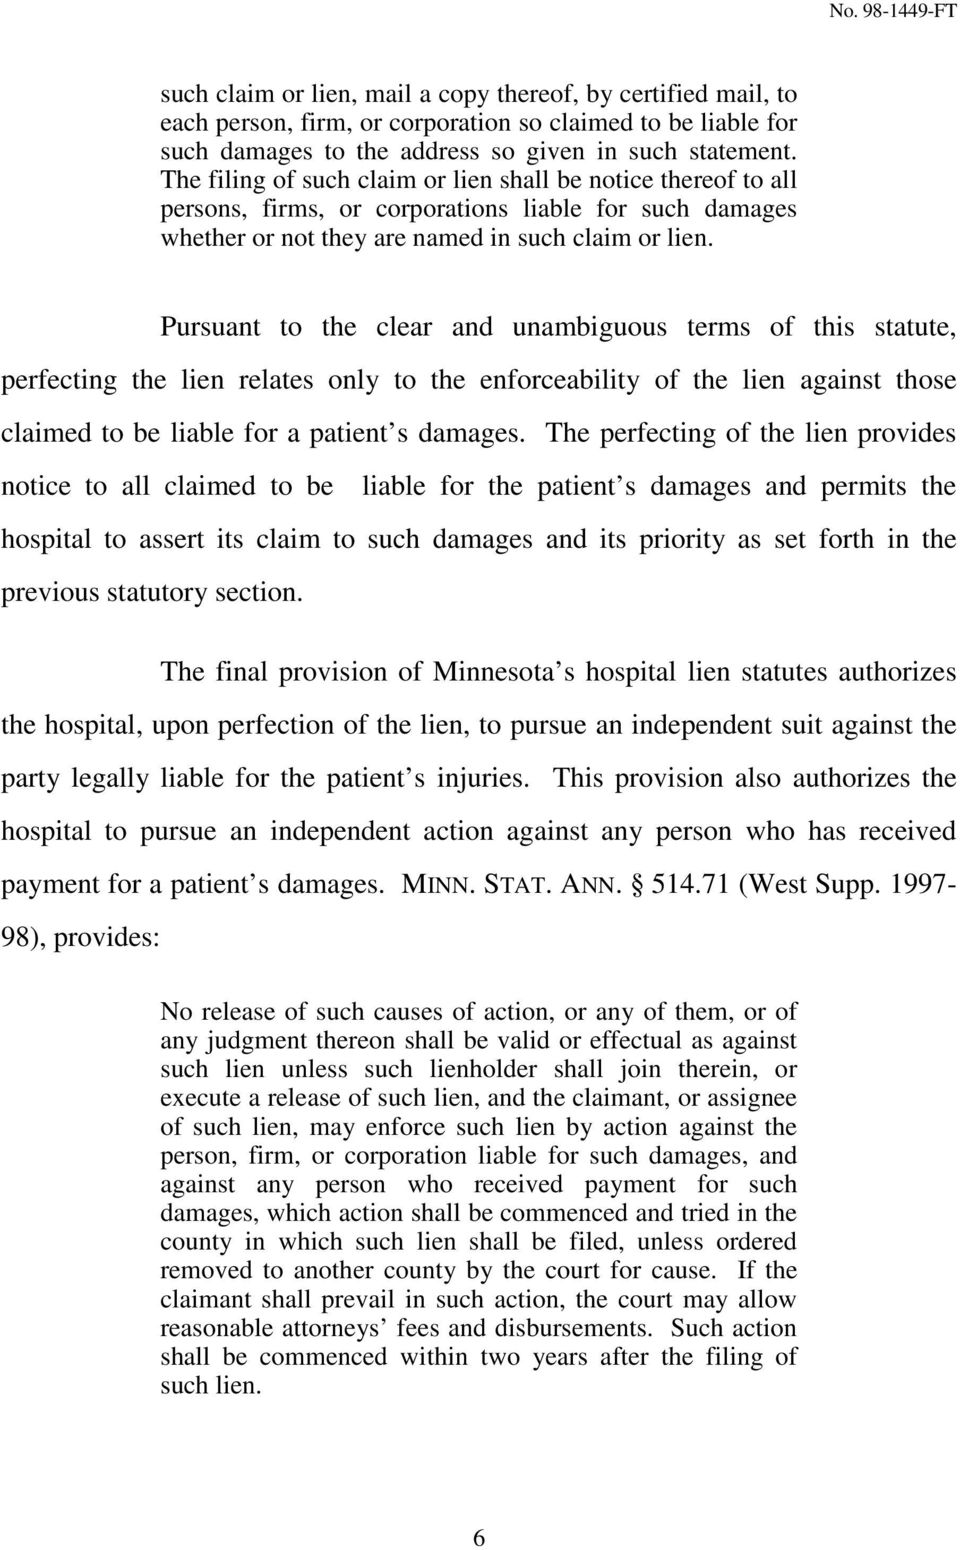 Pursuant to the clear and unambiguous terms of this statute, perfecting the lien relates only to the enforceability of the lien against those claimed to be liable for a patient s damages.